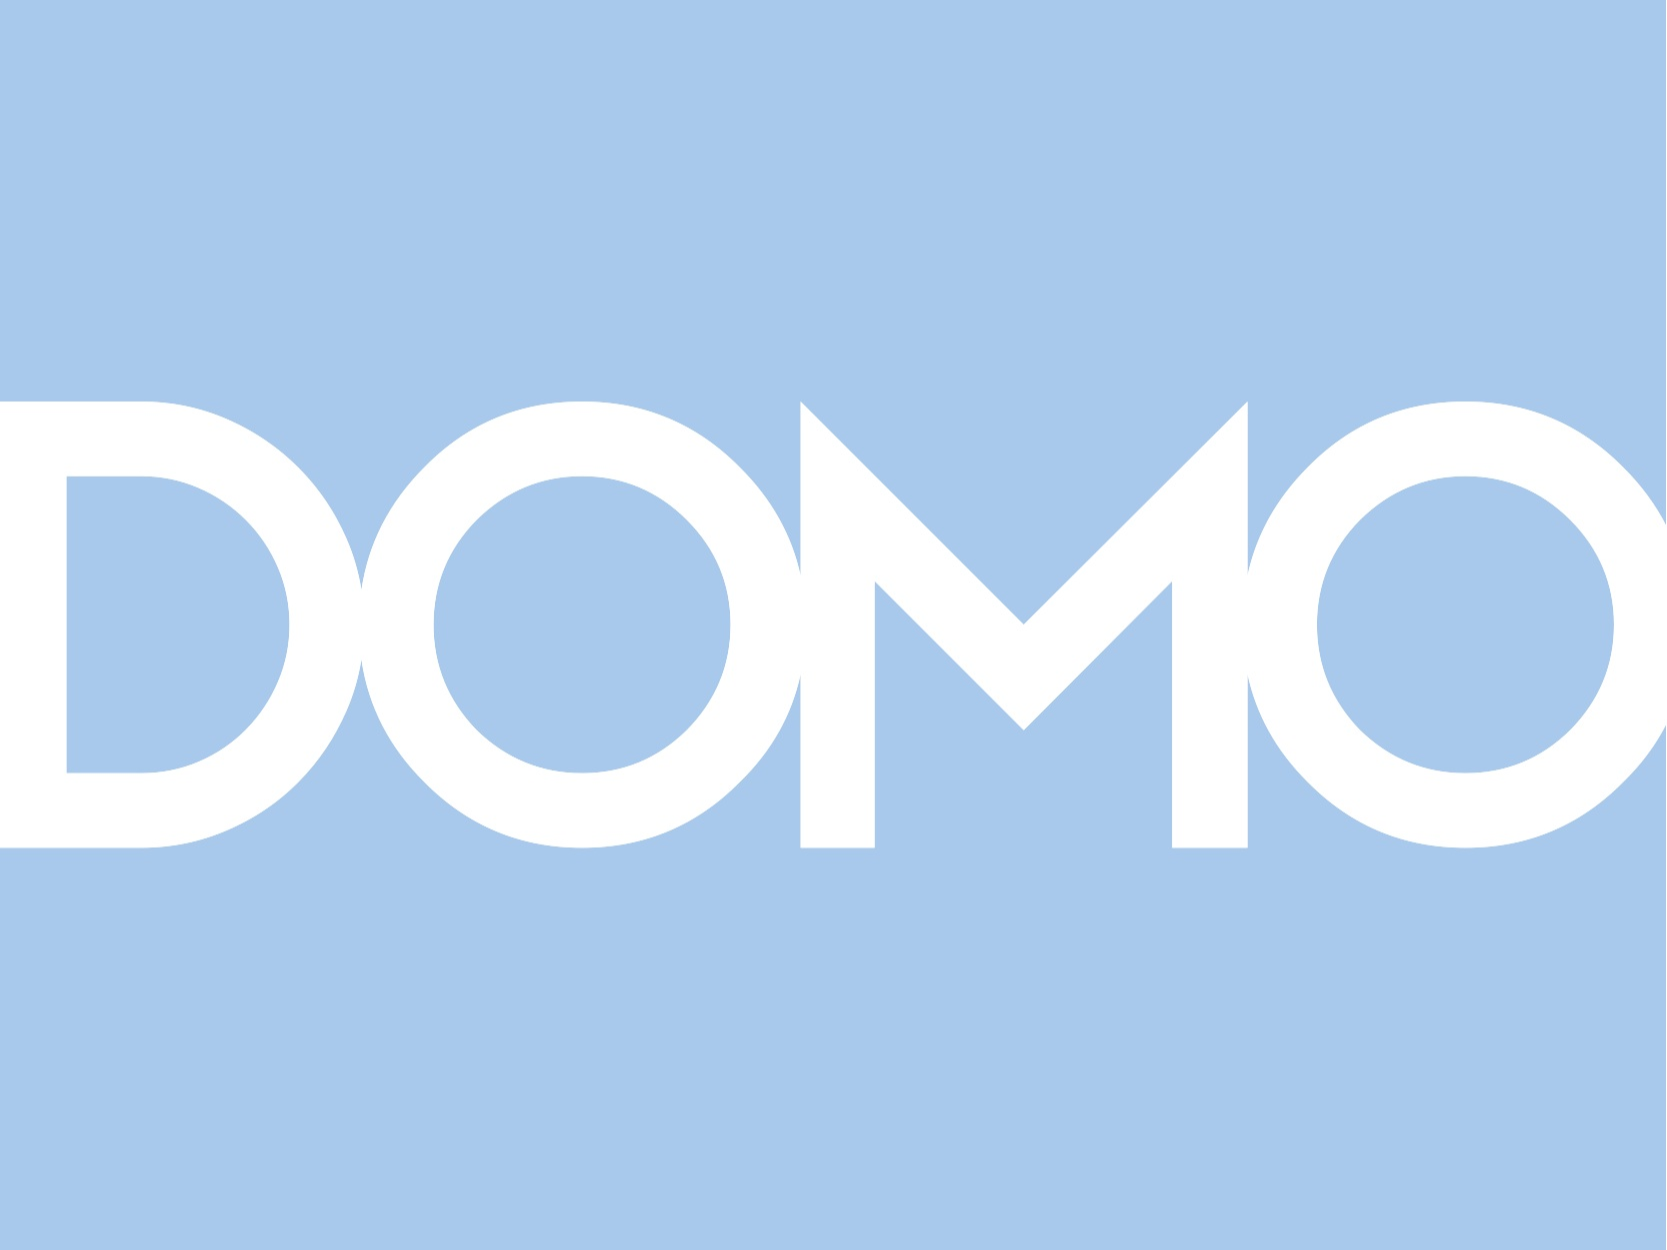 Domo logo feature